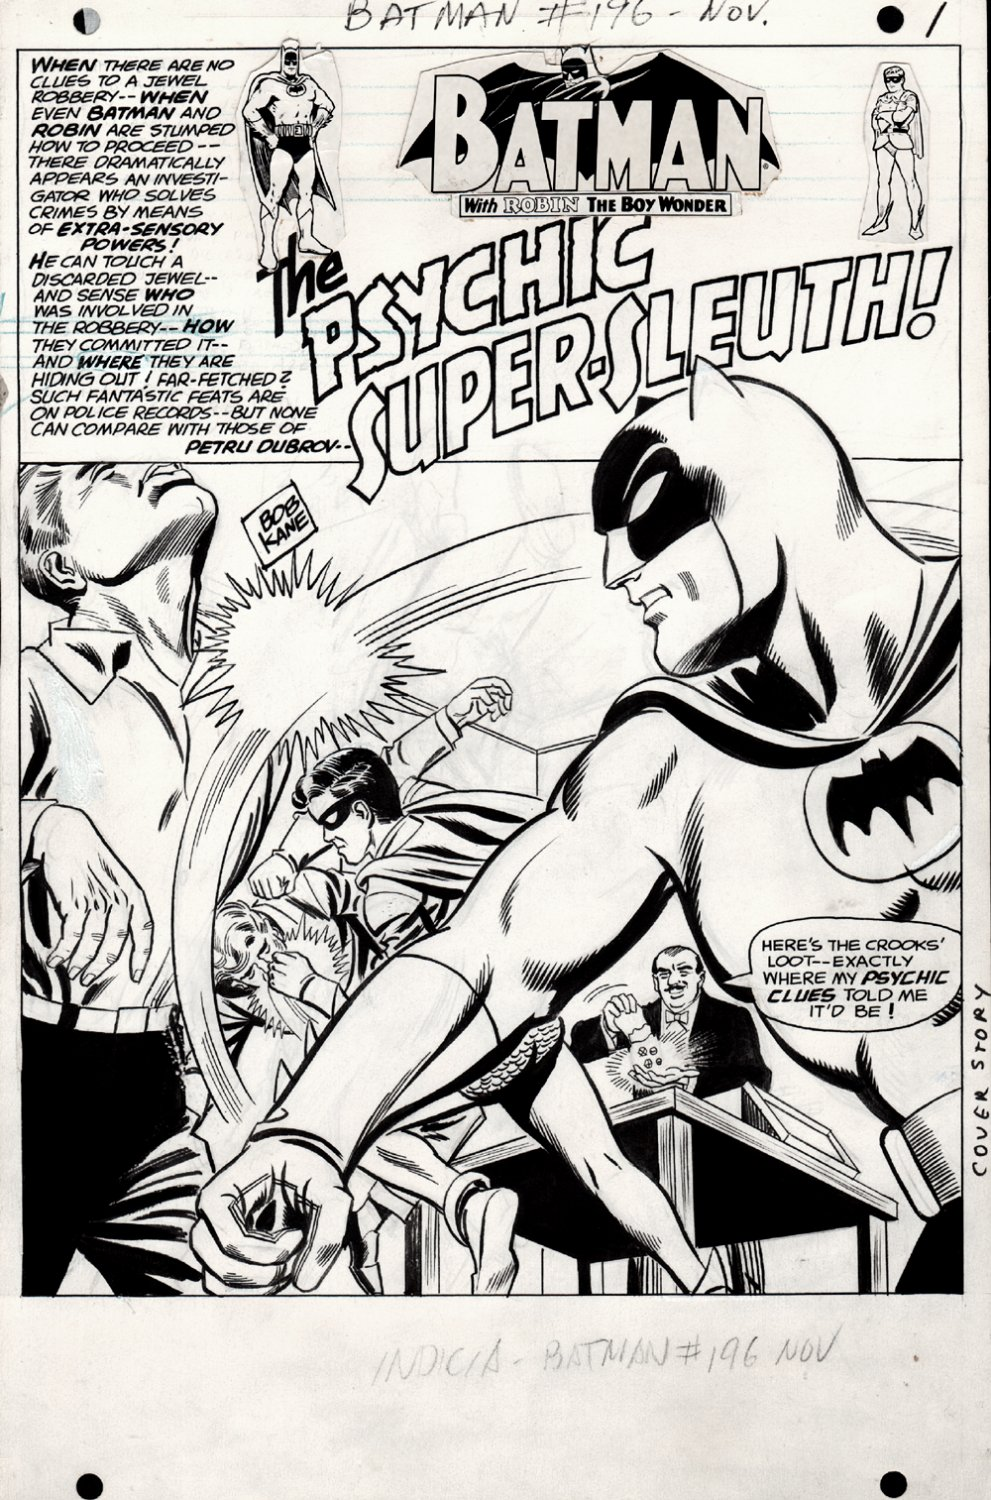 Batman #196 p 1 SPLASH (1967)